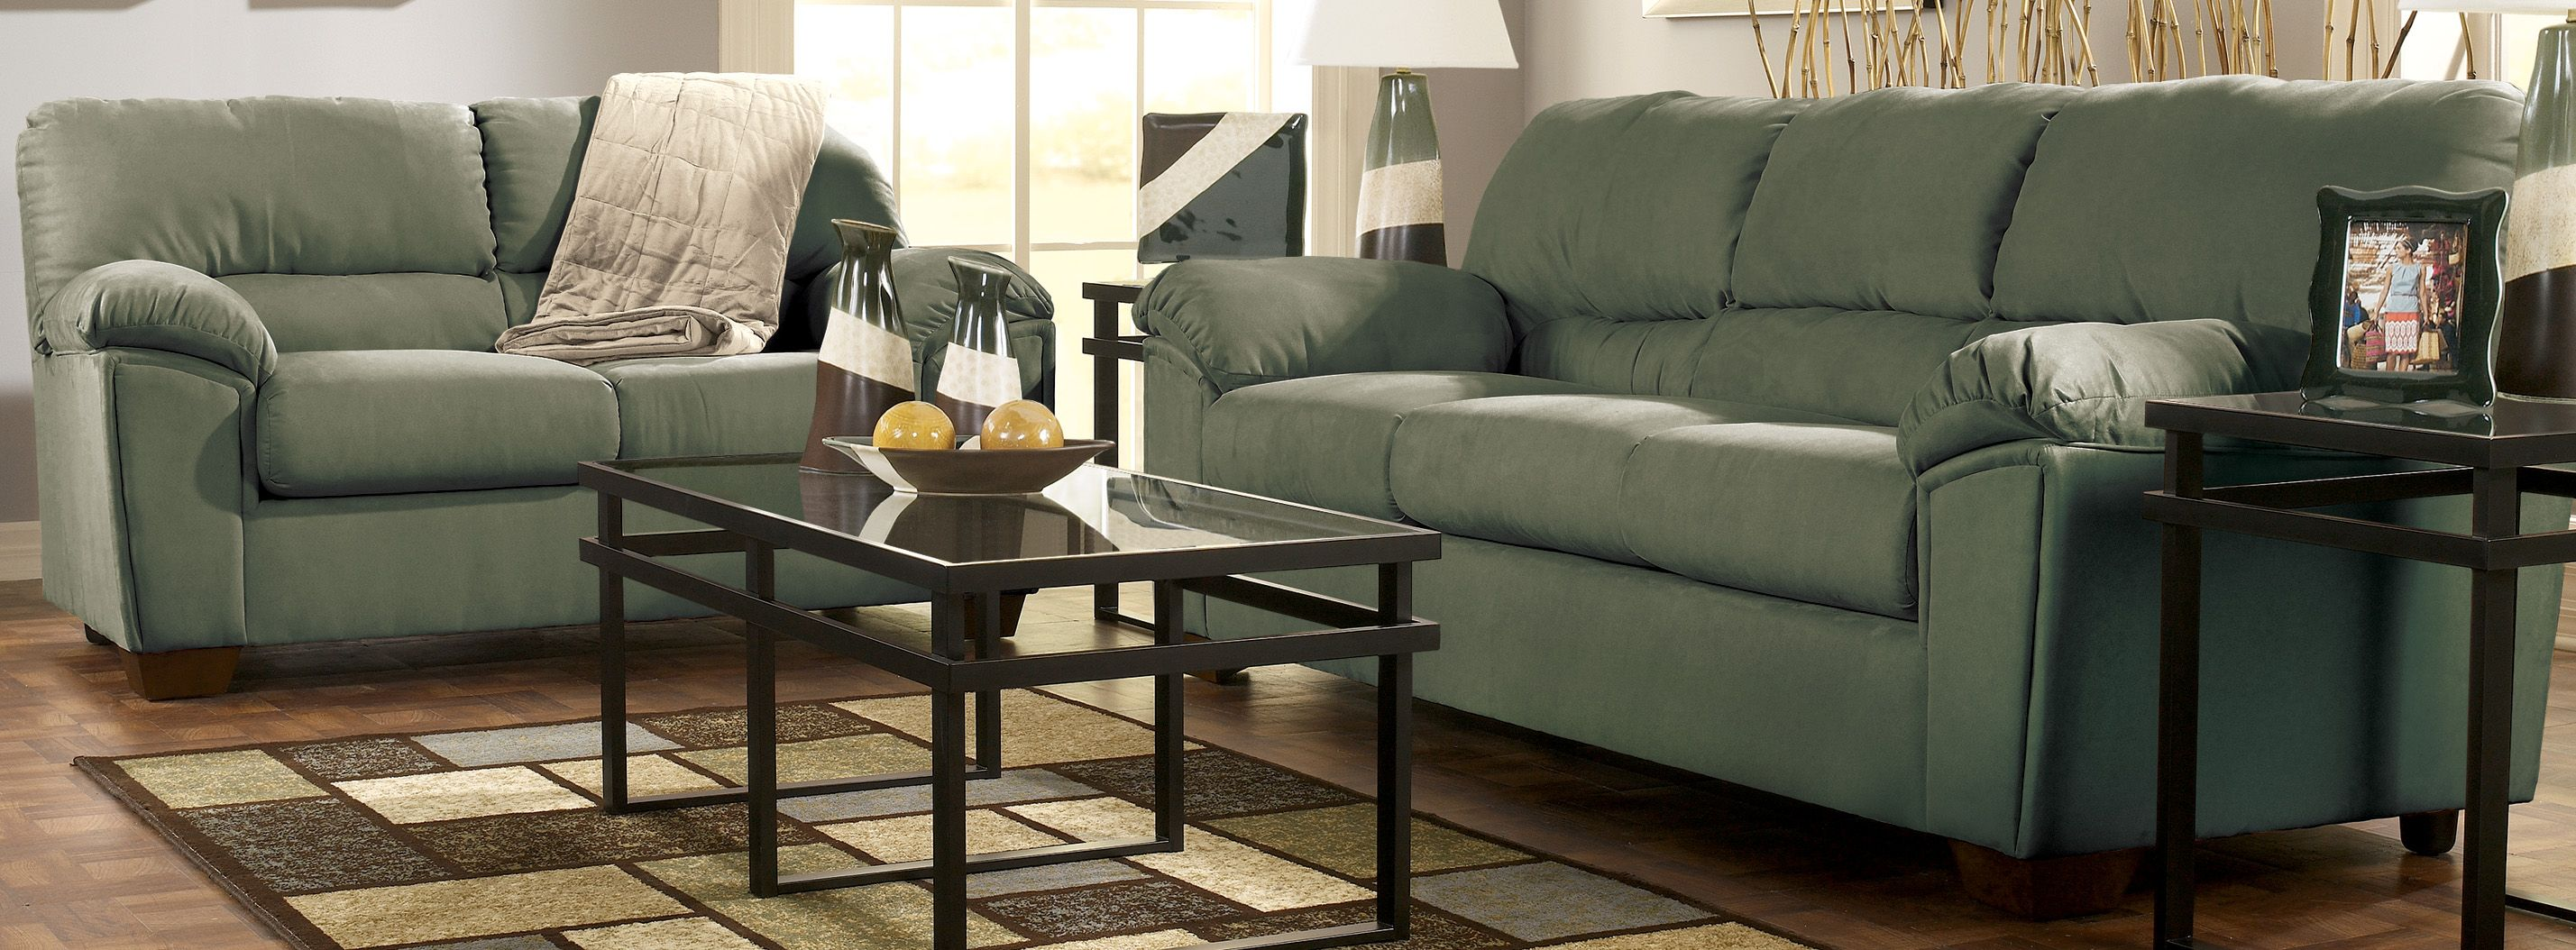 Green sofa signature design by ashley furniture near - Discount living room furniture near me ...